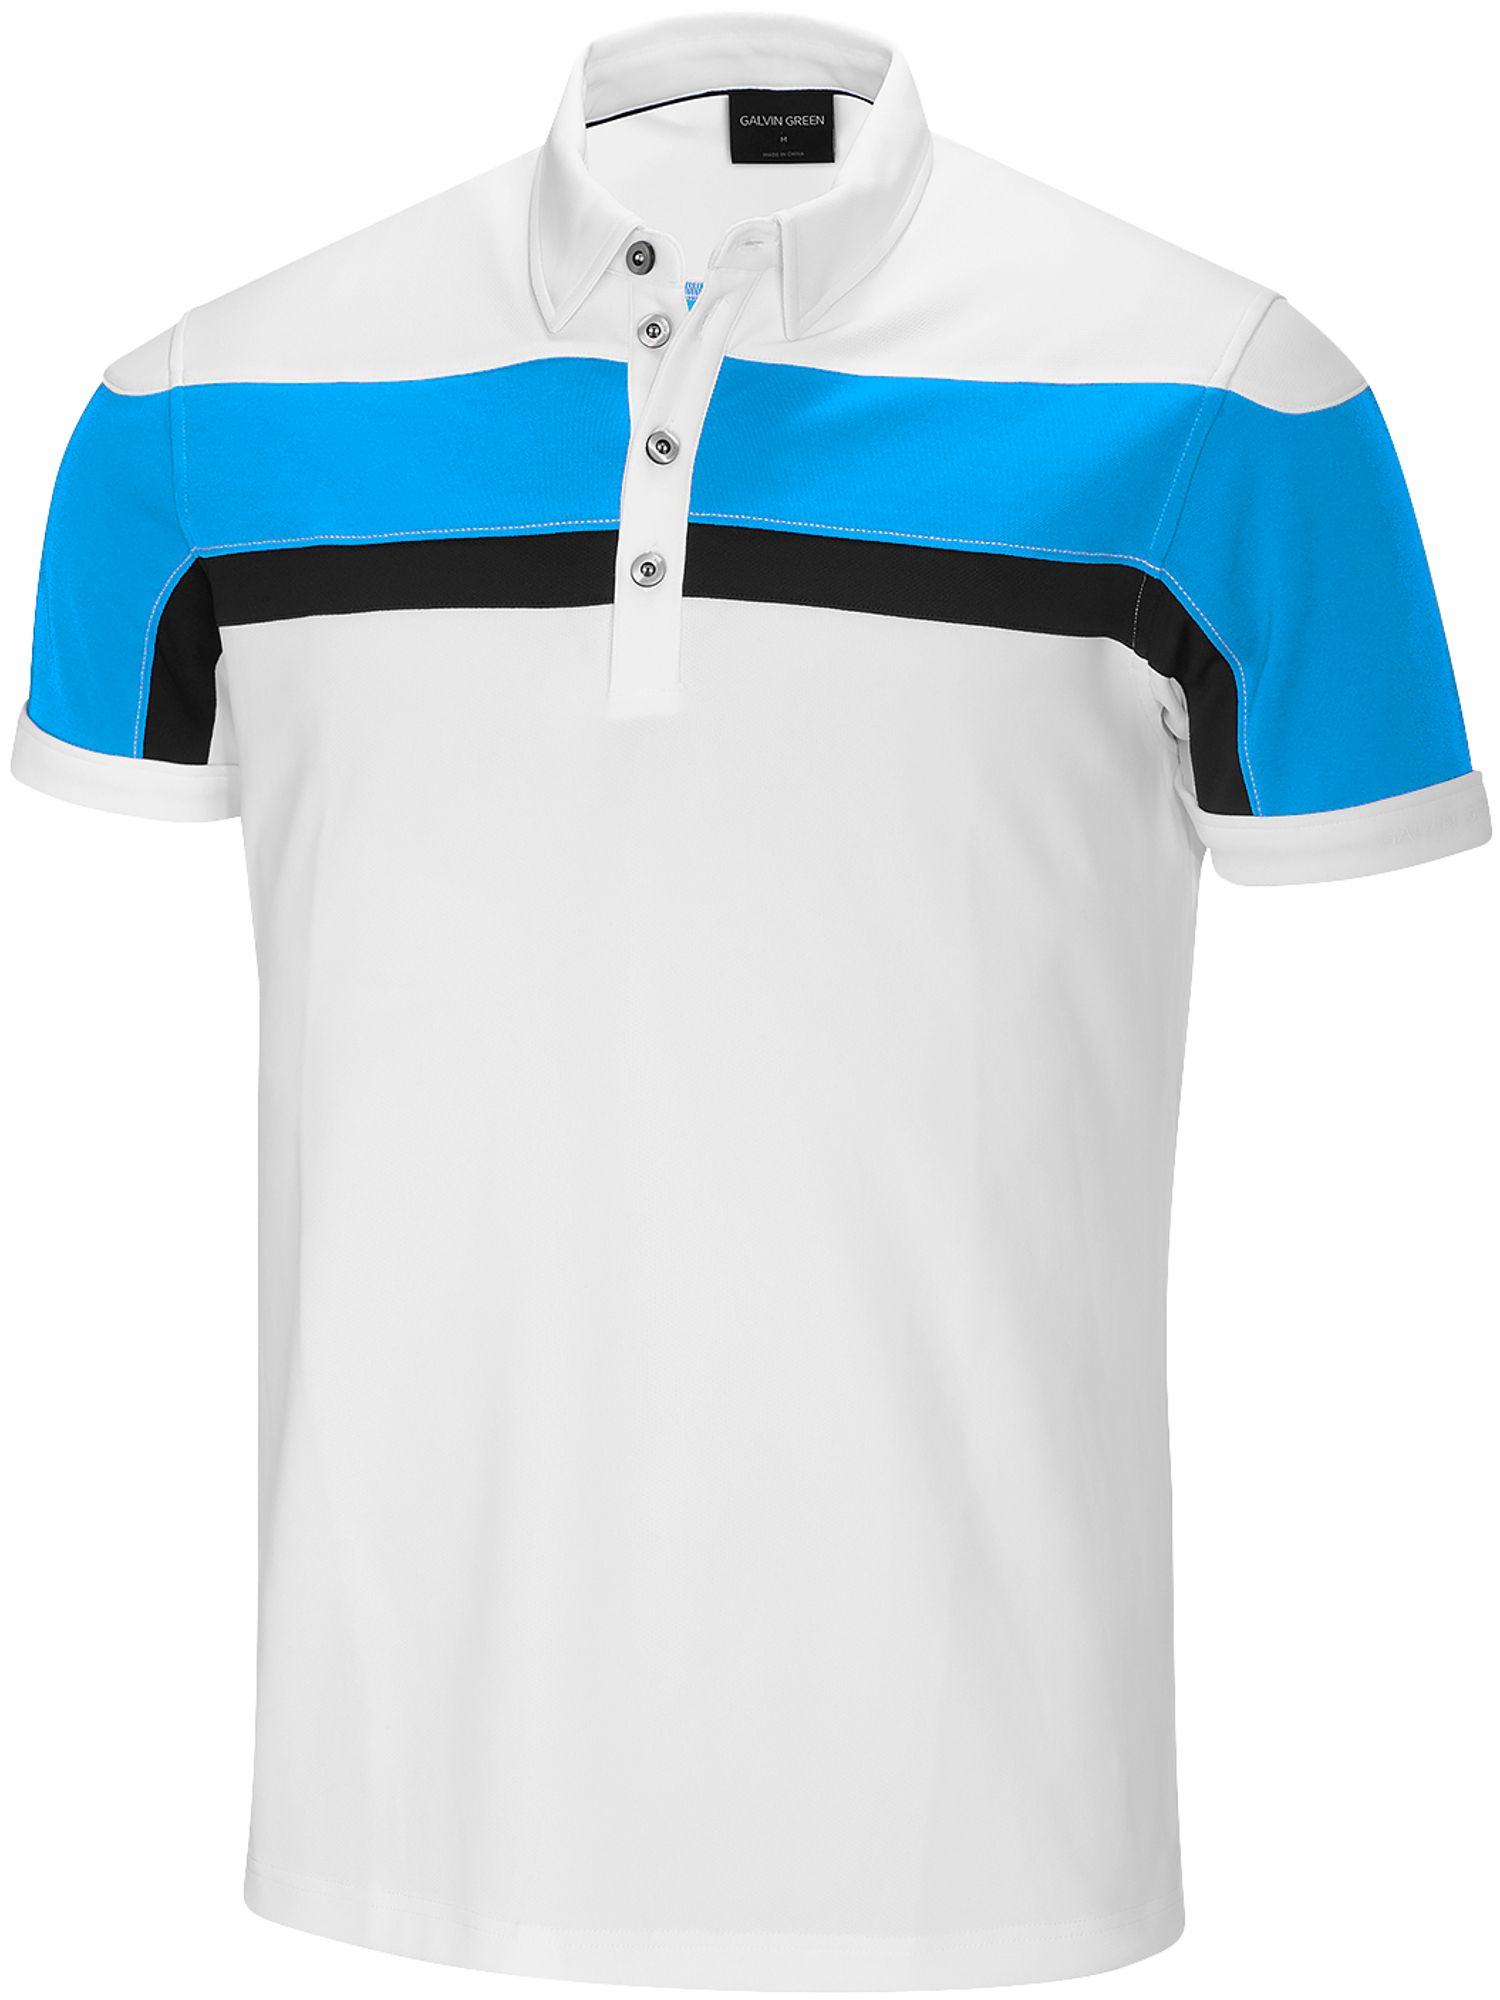 Men's Galvin Green Mitchell Ventil8 Polo, White